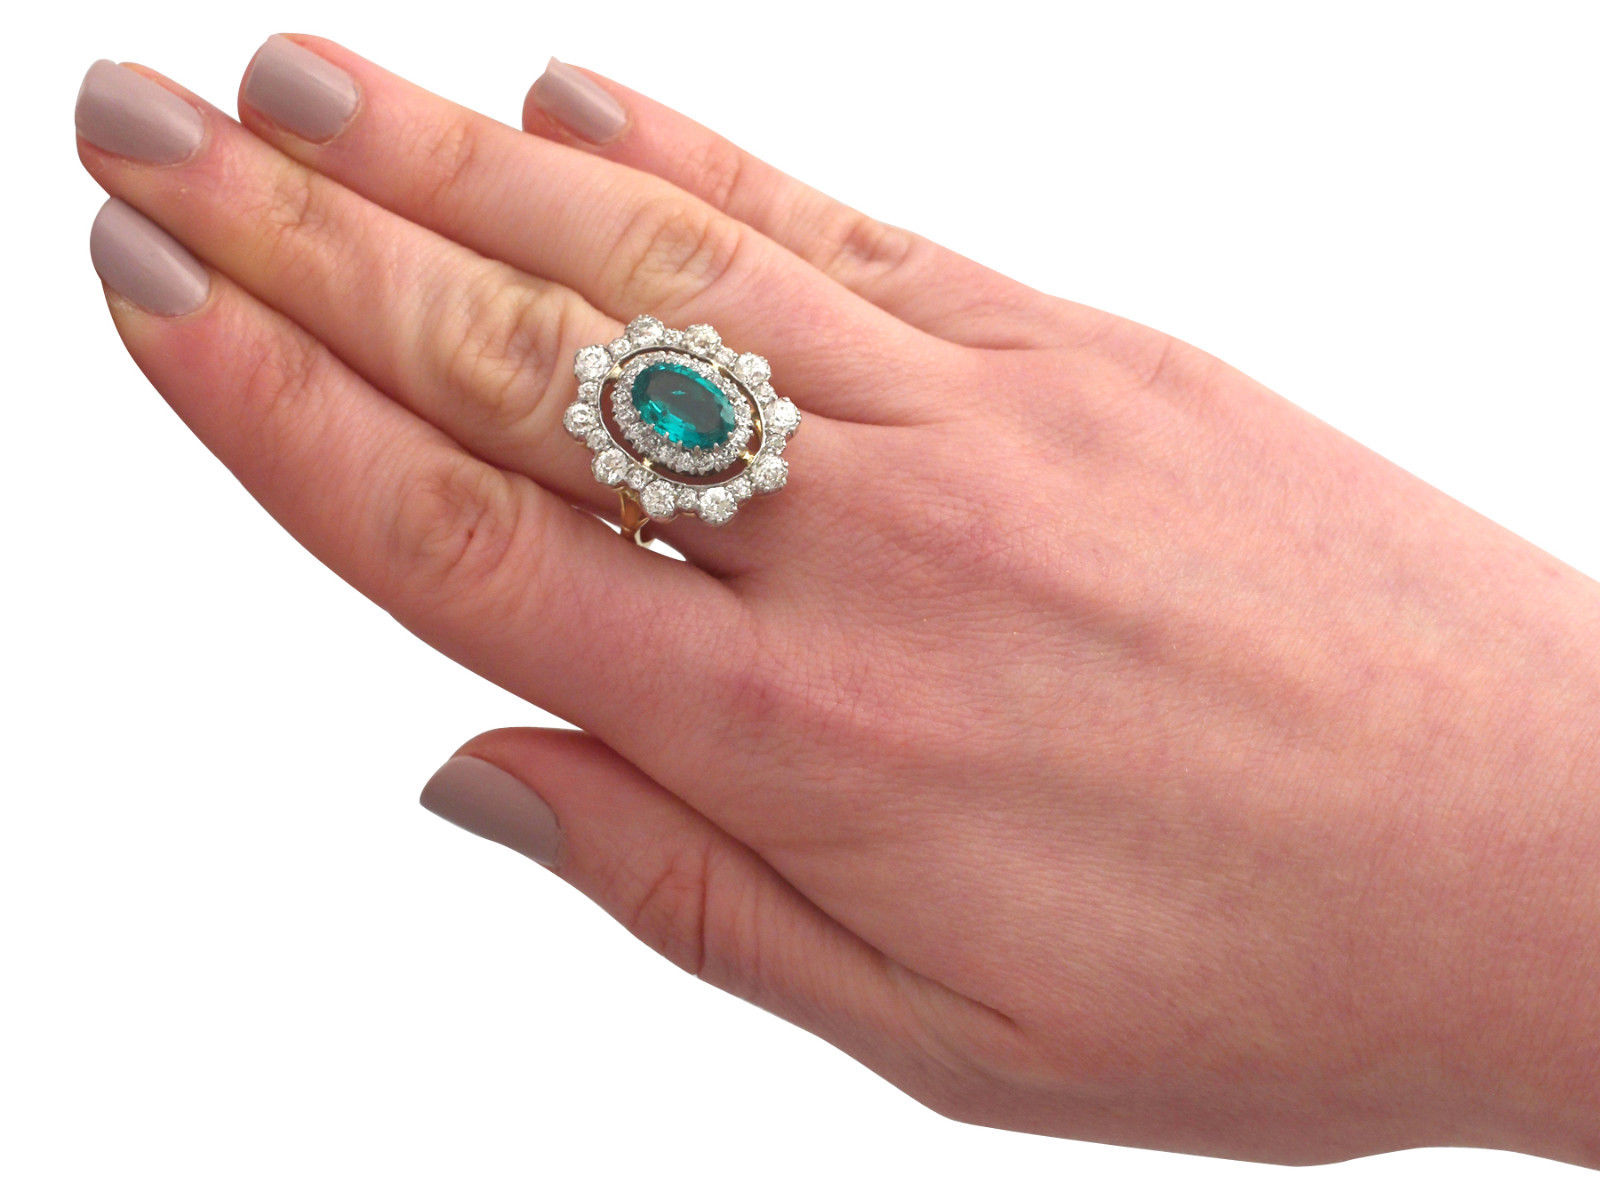 This stunning antique 1930's cocktail ring is exceptional quality set with an emerald and very well colour matched, very high colour graded old cut diamonds. The ring is an exceptional gauge of gold and is in excellent condition.